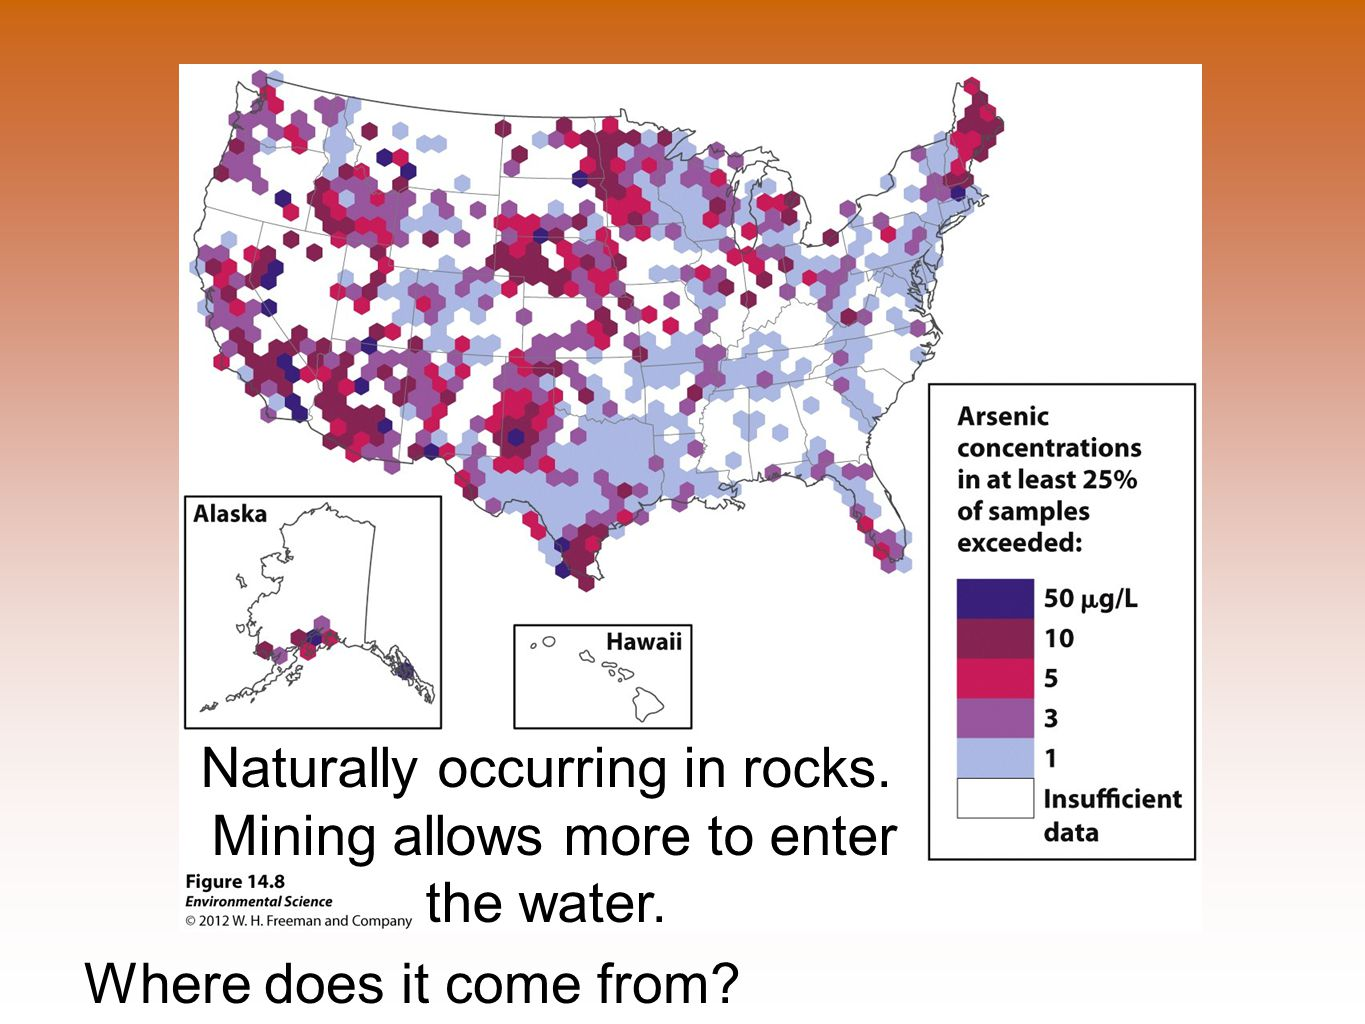 Where does it come from Naturally occurring in rocks. Mining allows more to enter the water.